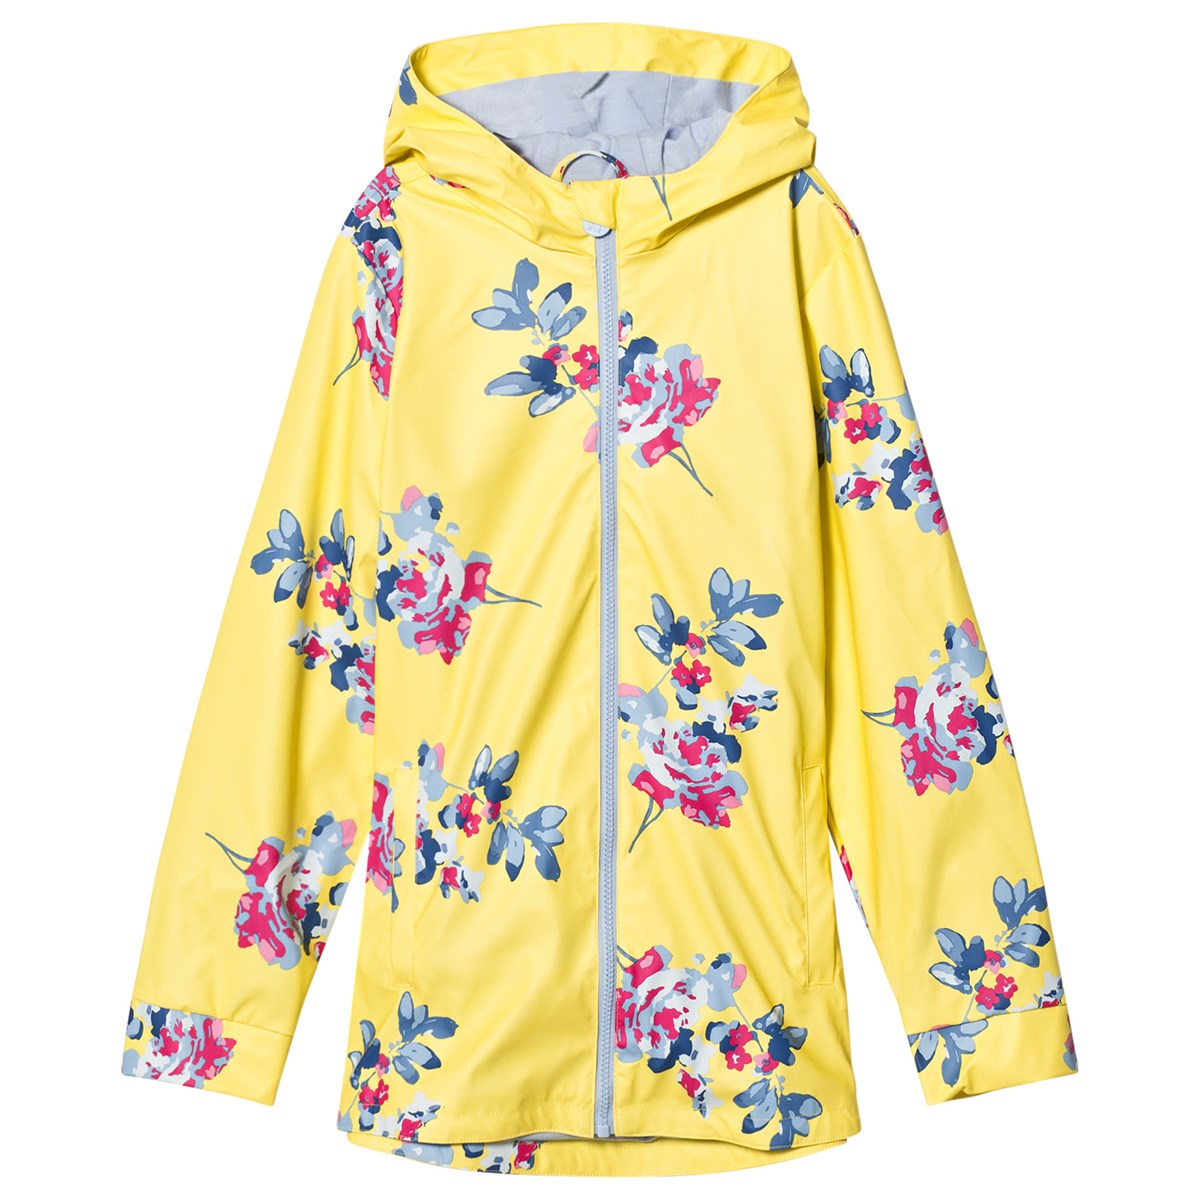 Yellow Margate Floral Joules Jersey Dress